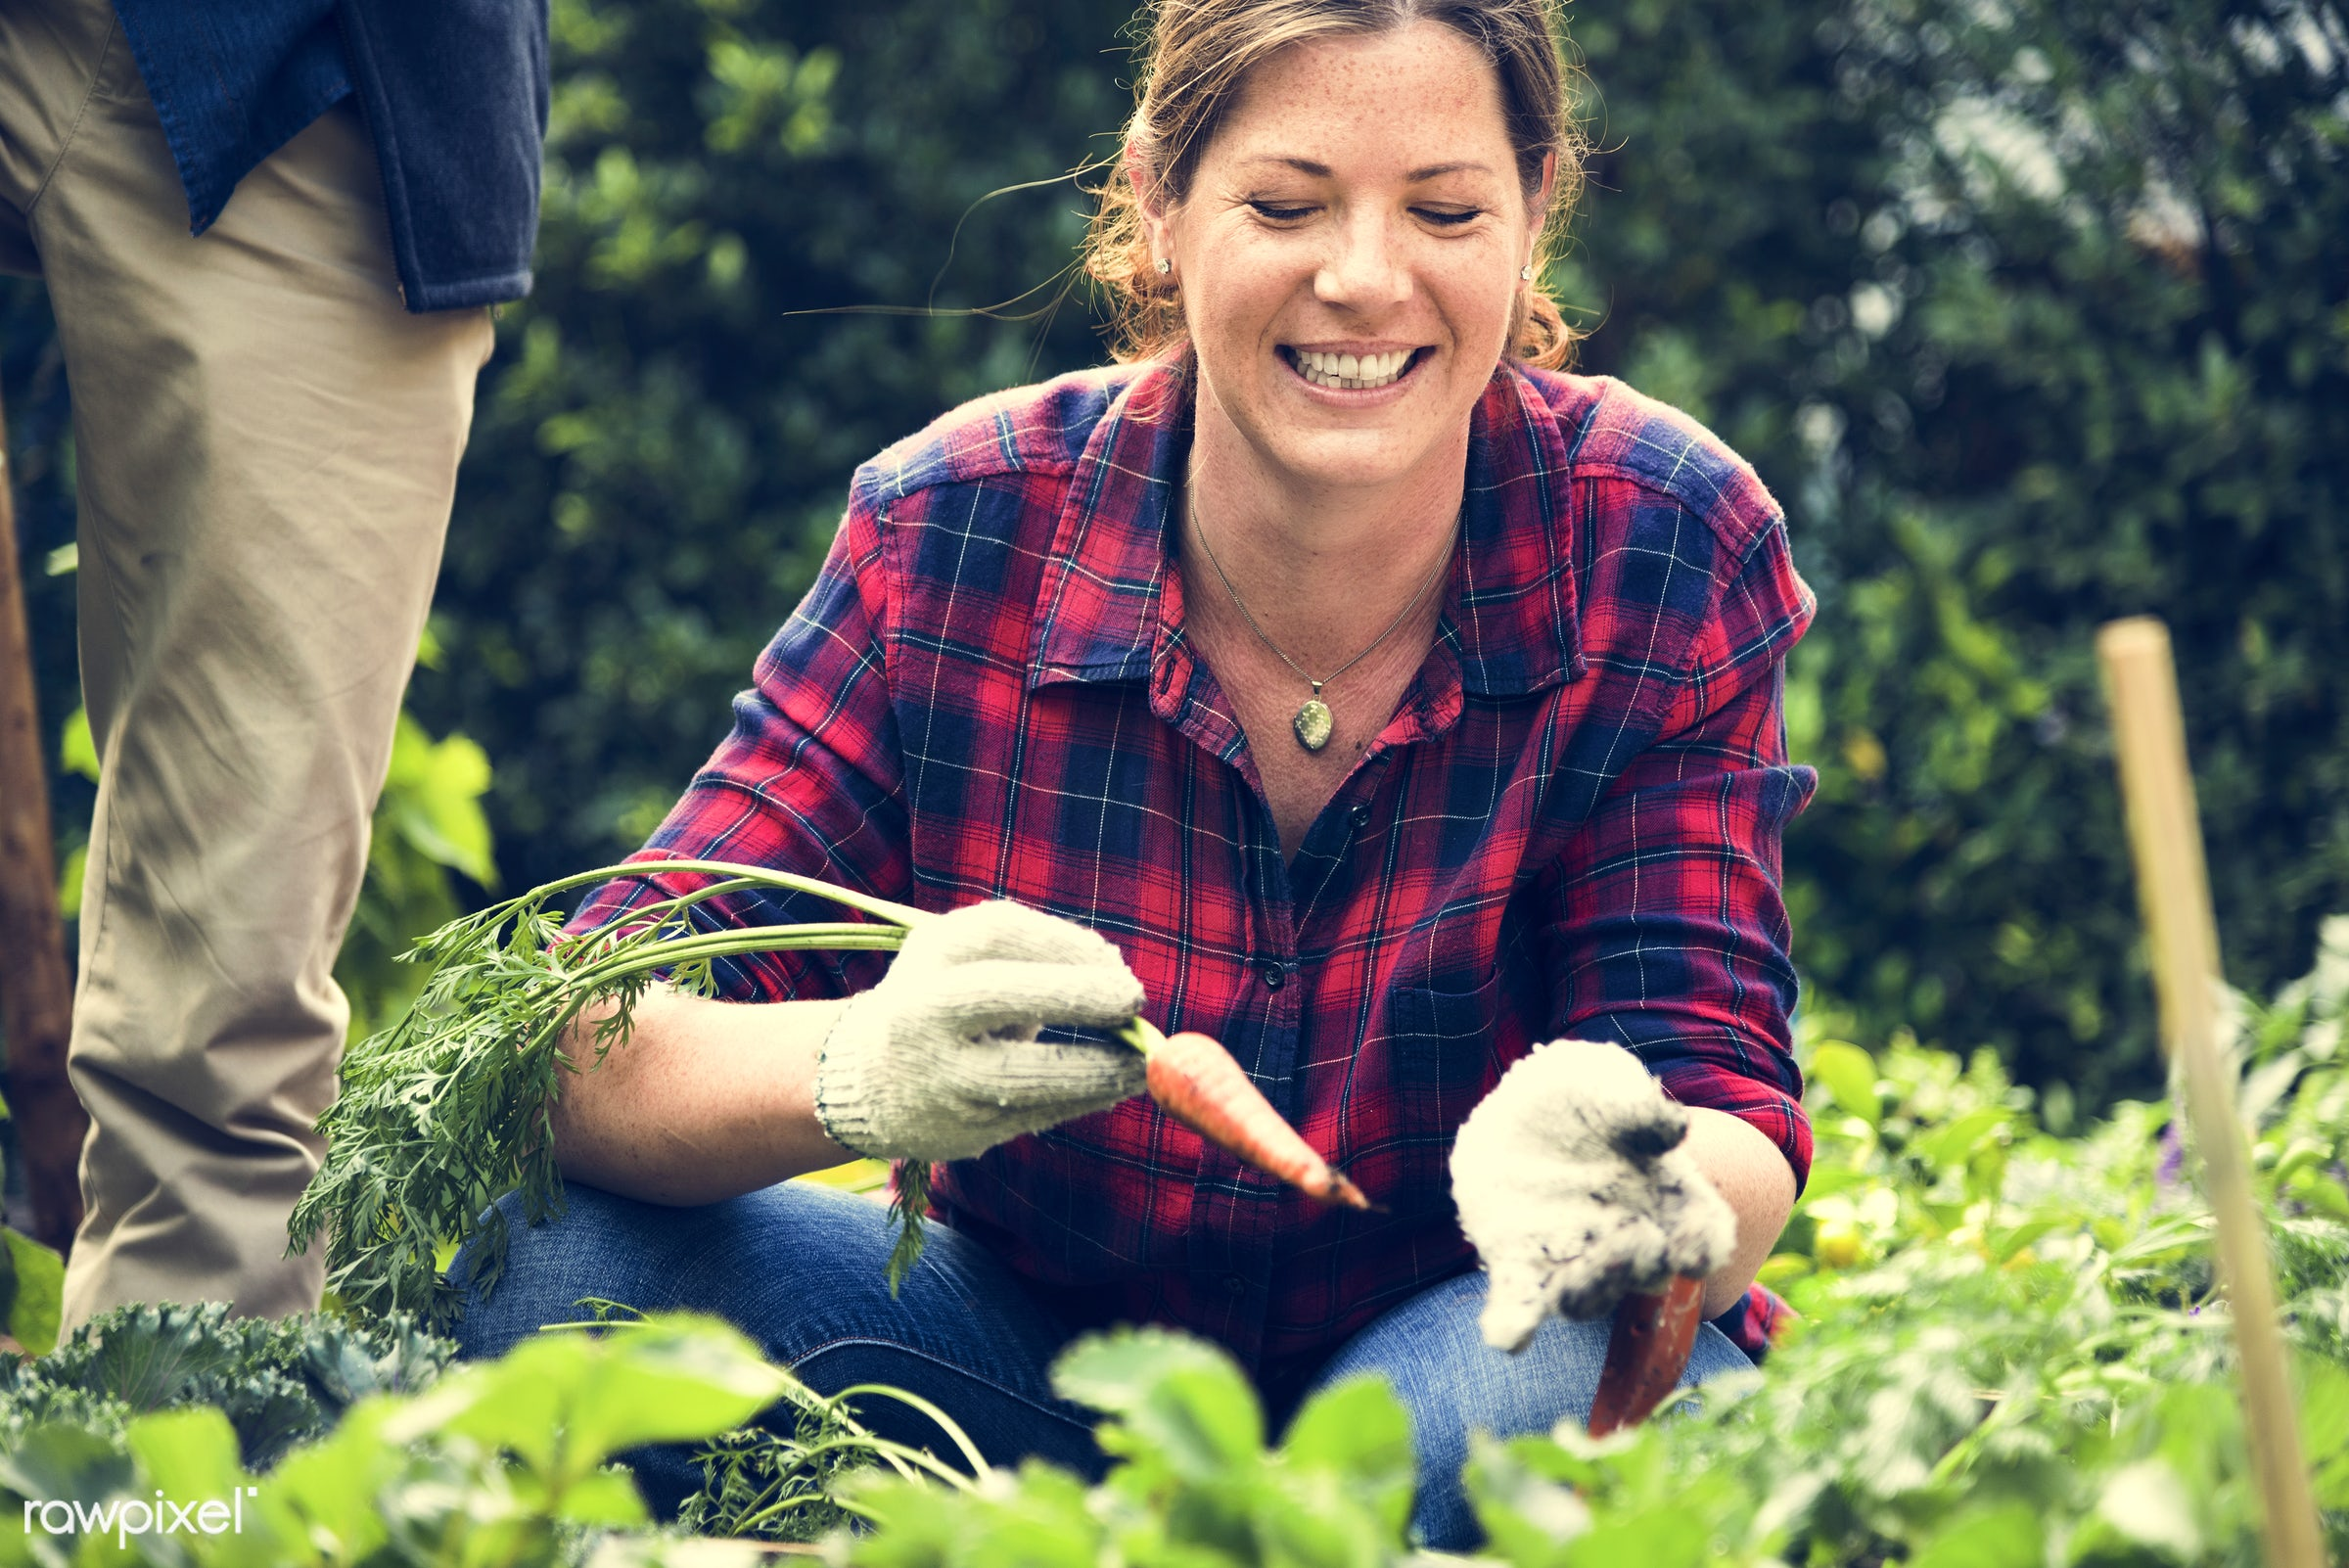 plant, carrot, tomato, nutritious, greenhouse, friends, farmer, fresh, lettuce, woman, healthy eating, friendship, smile,...